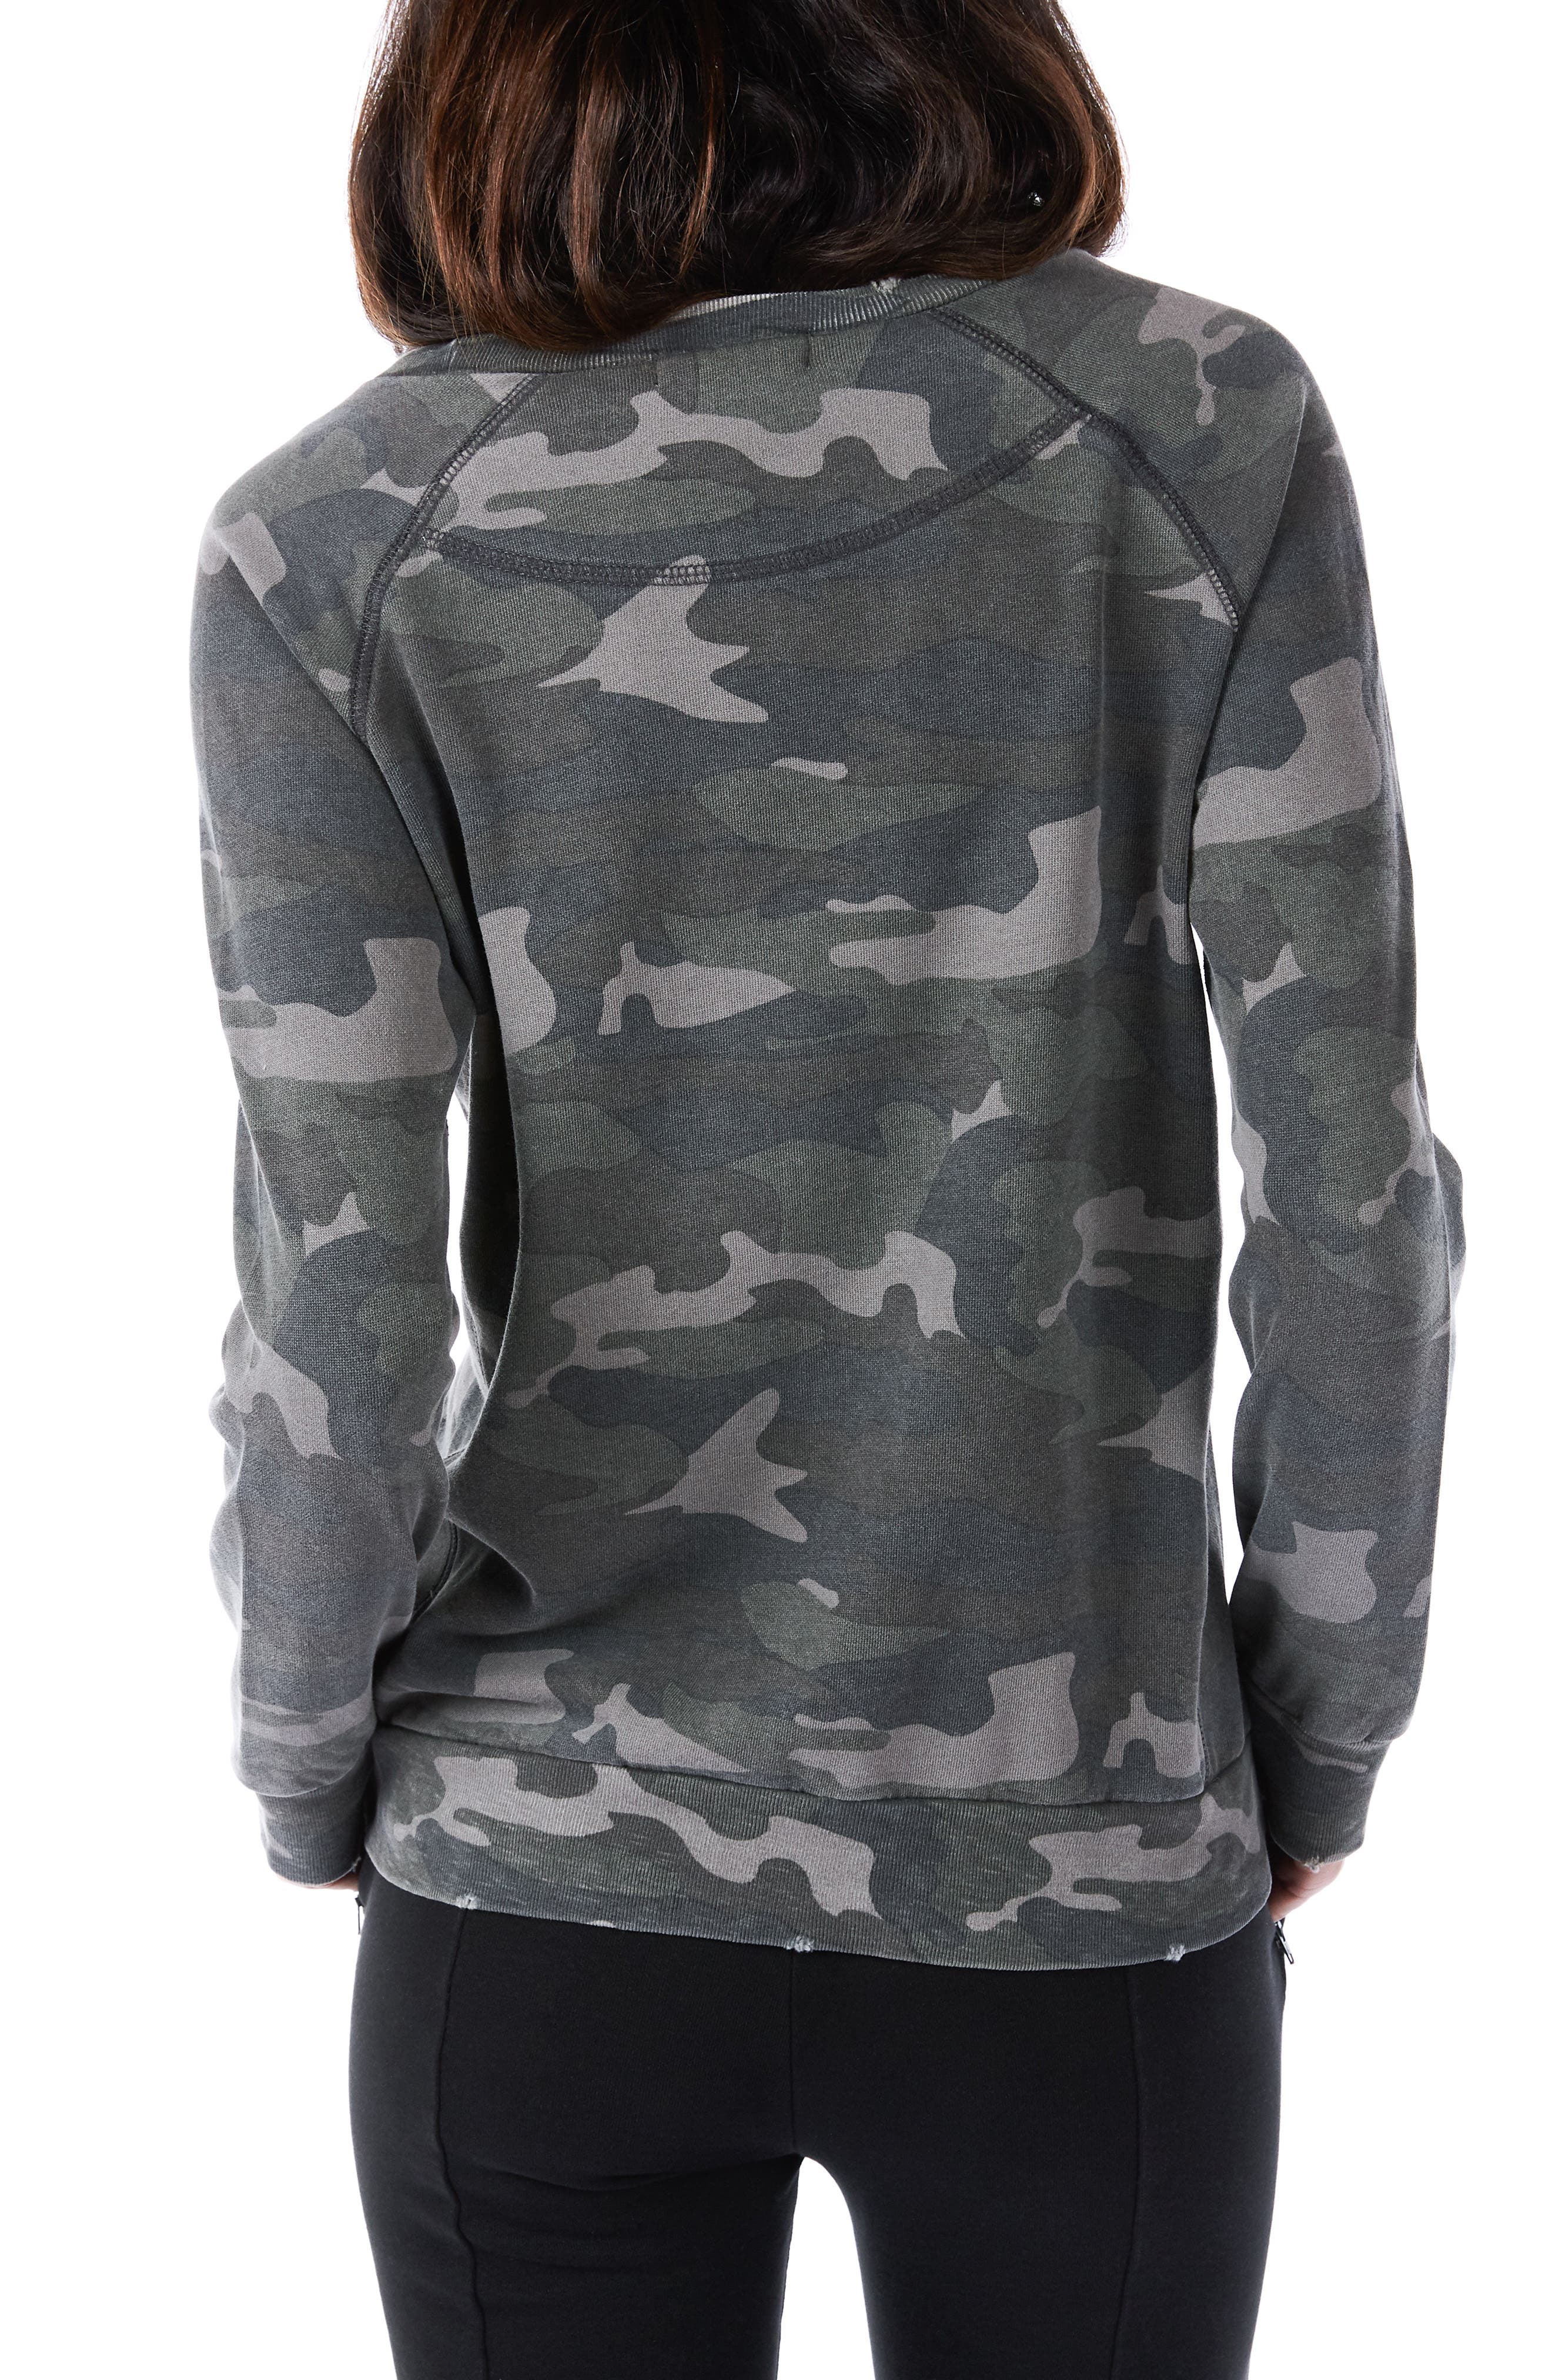 Distressed Camo Sweatshirt,                             Alternate thumbnail 2, color,                             300